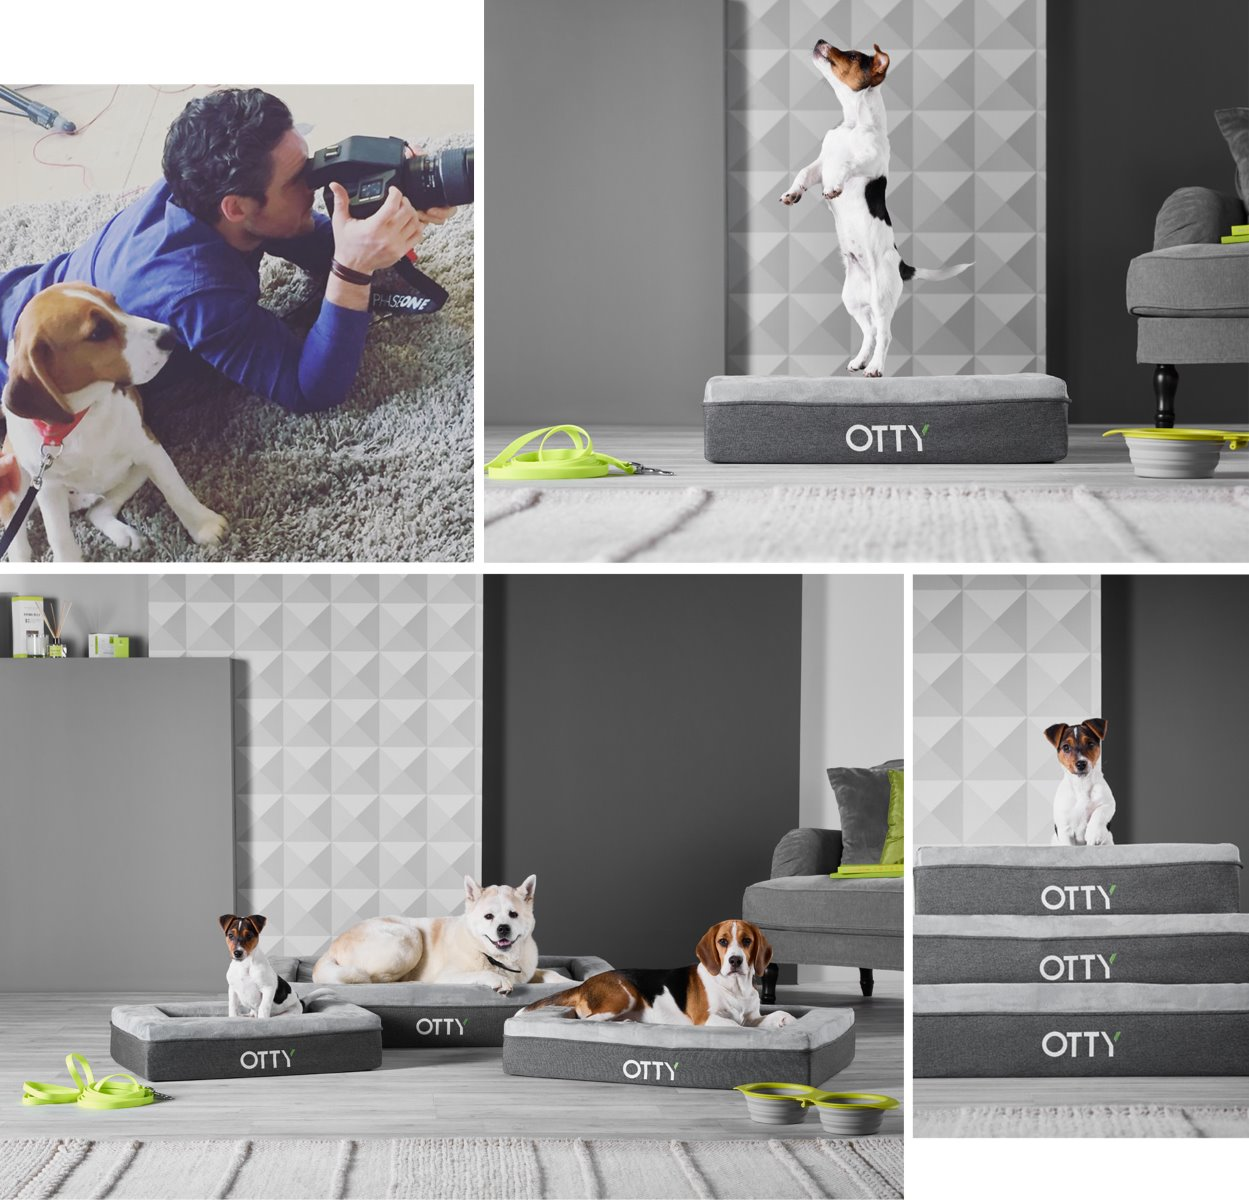 studio_photography_product_dogs_set_visions